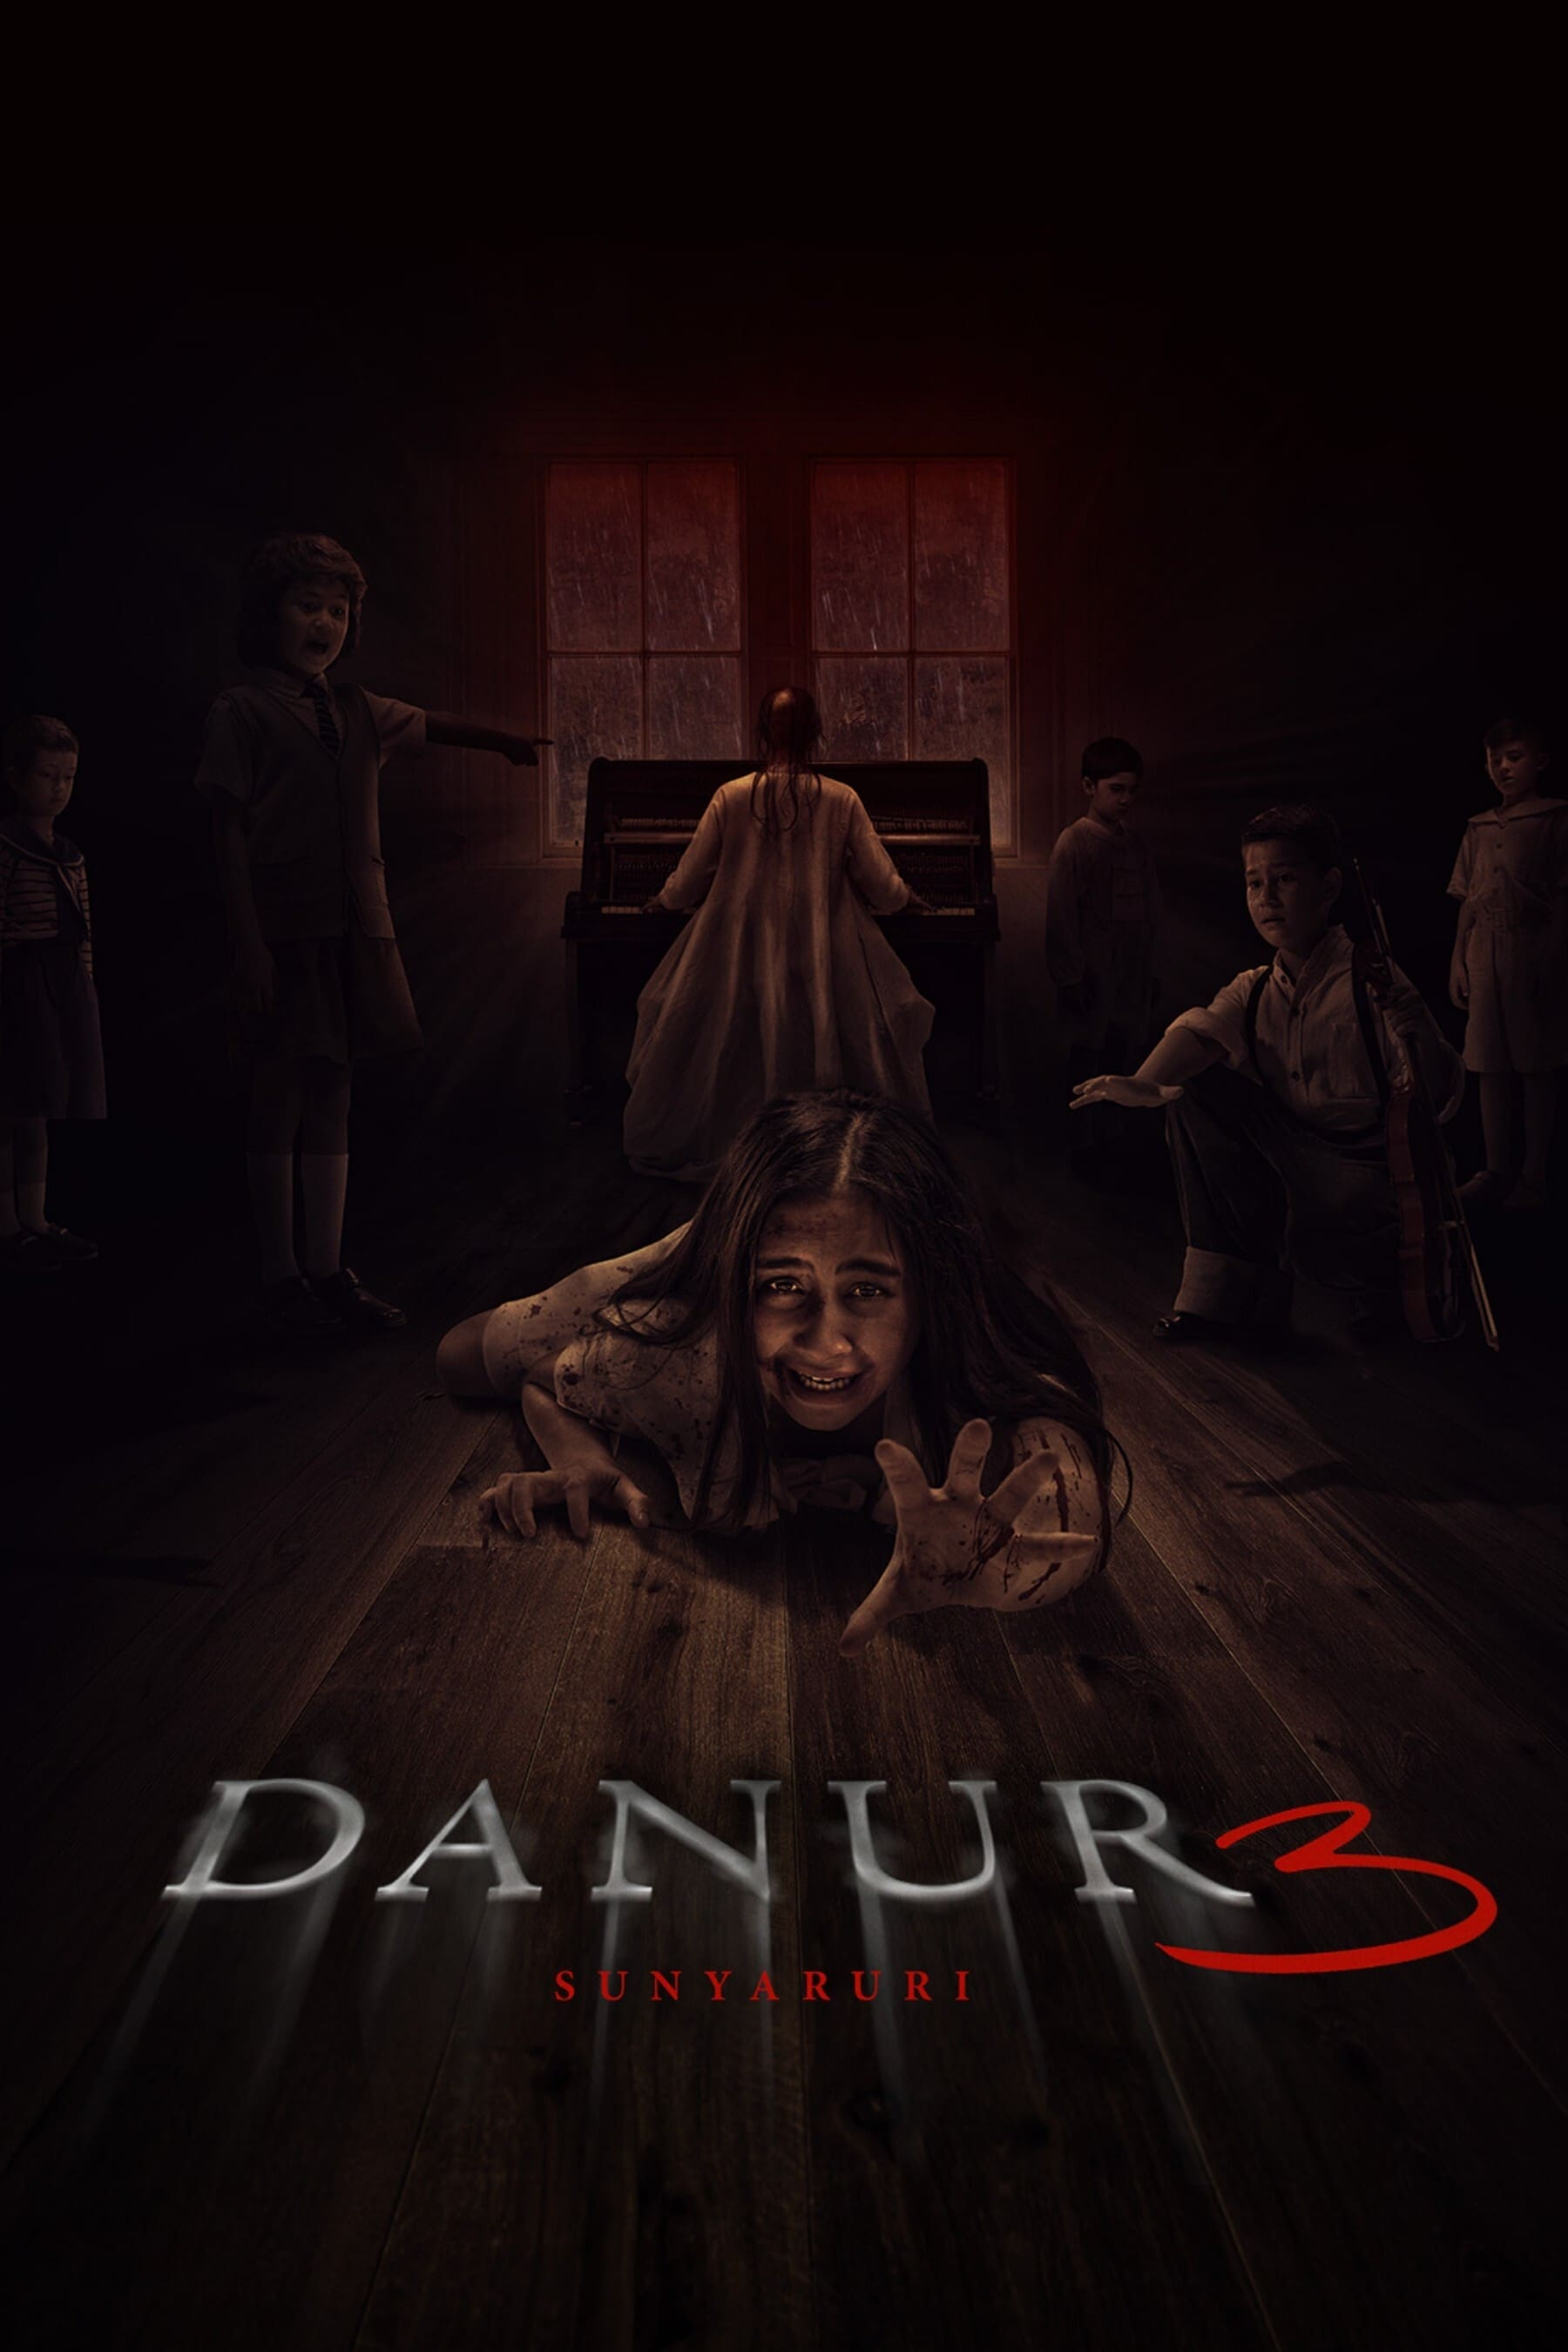 Download Film|Danur 3 Sunyaruri|Terbaru - YouTube